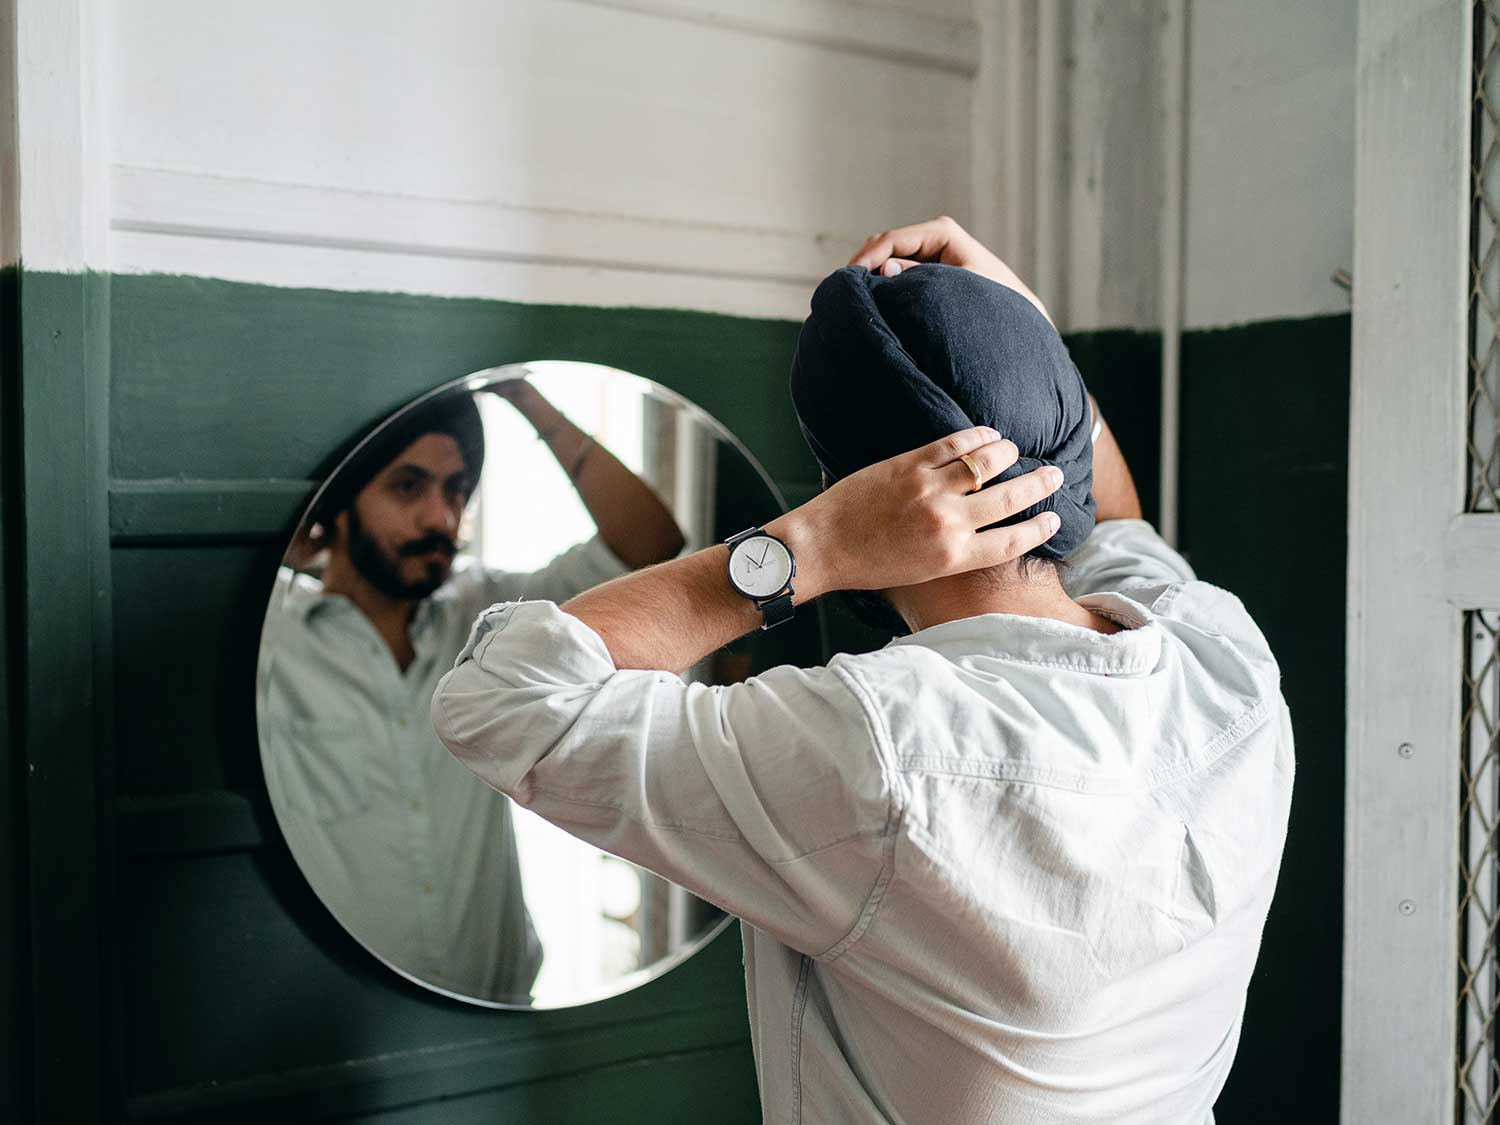 Man adjusting turban in mirror with watch on left hand.